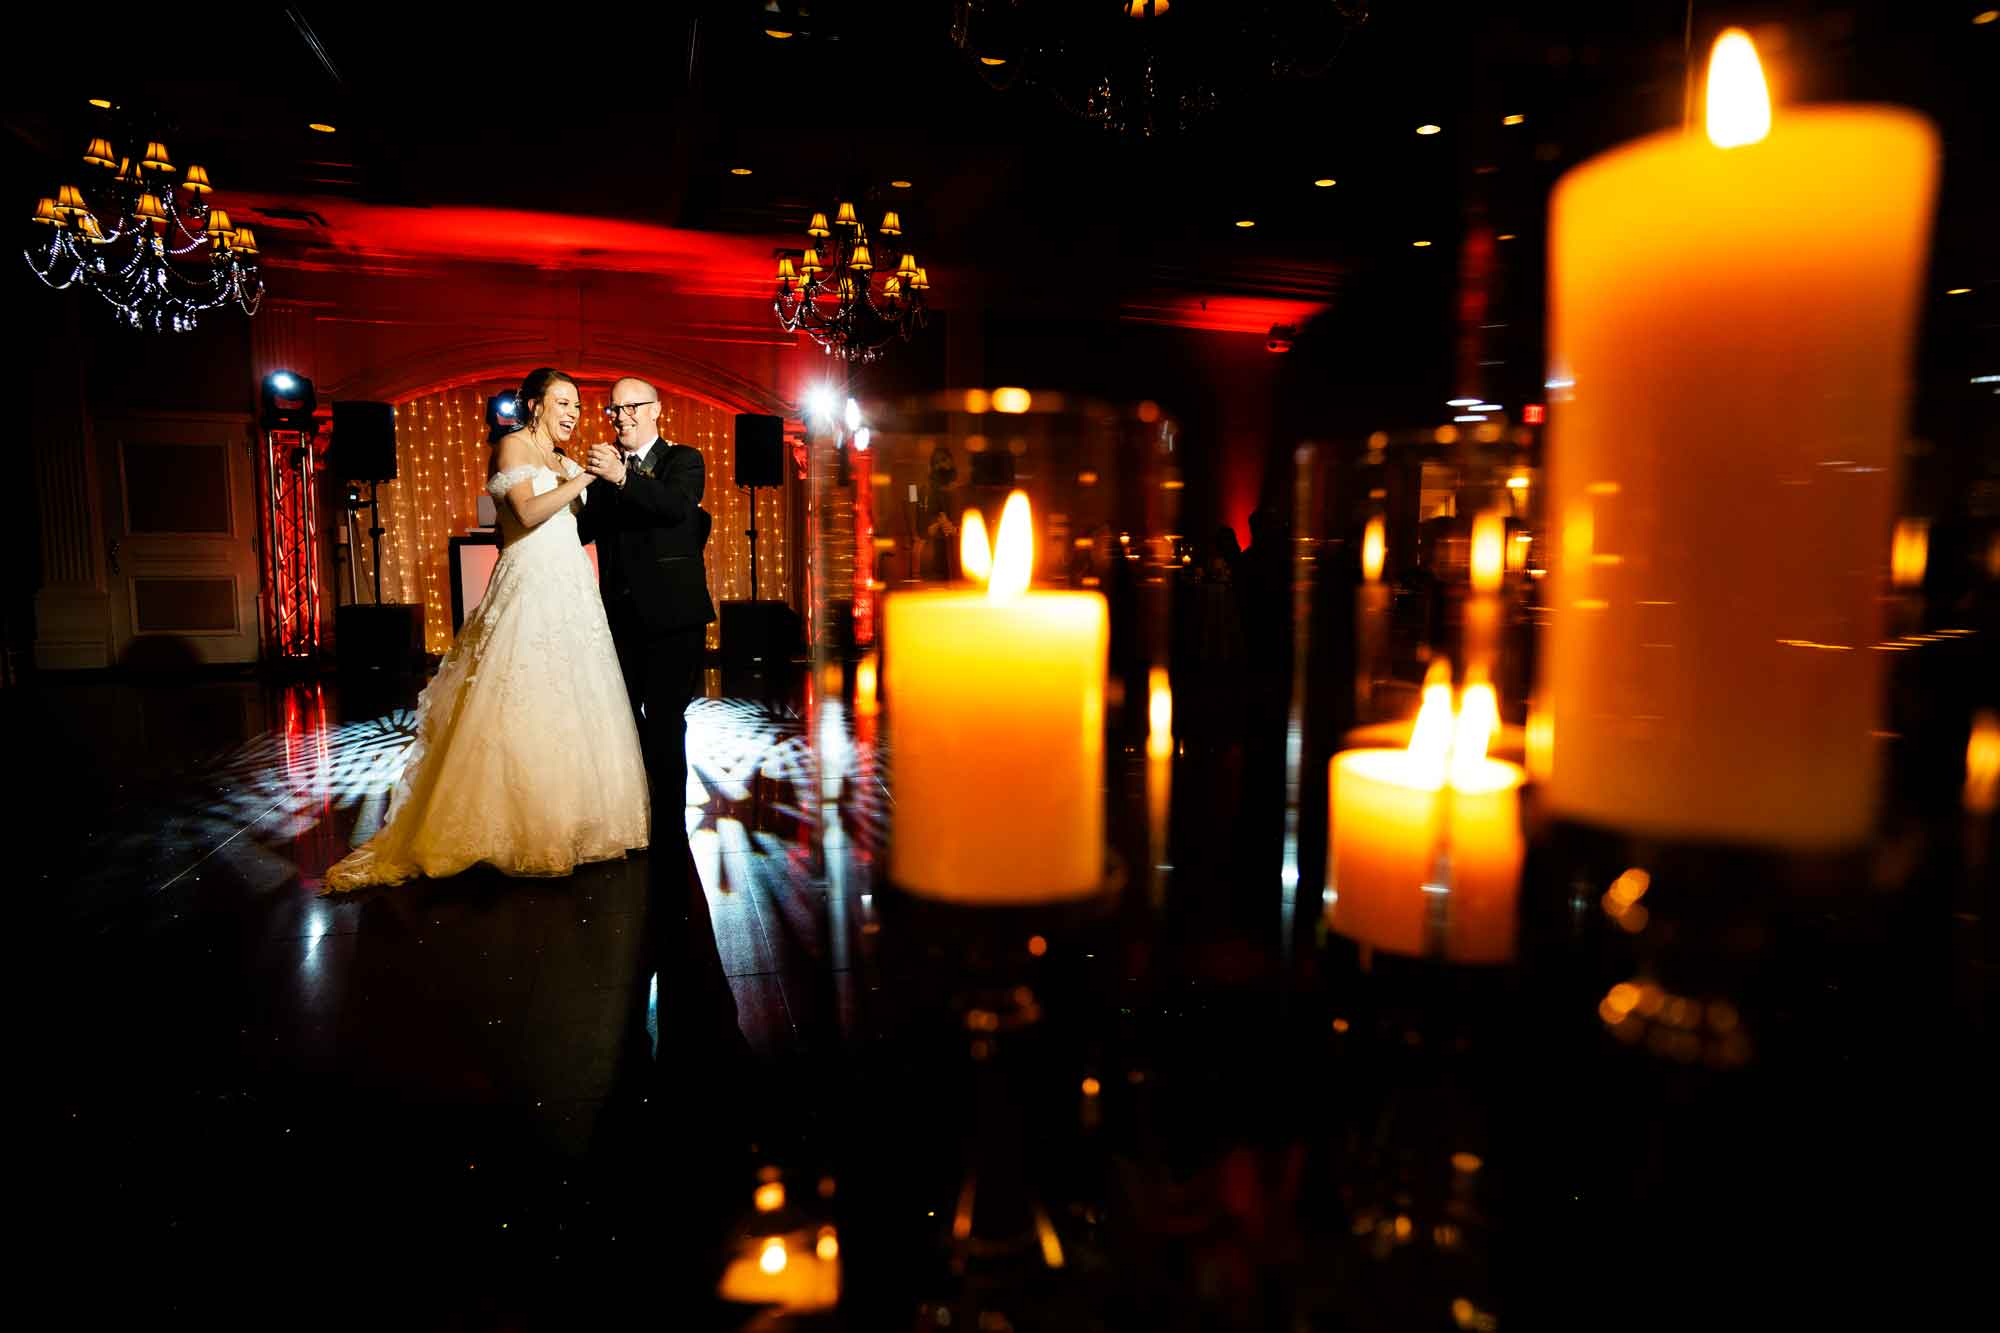 Bride dance with father against profusion of candles - photo by MD photo films